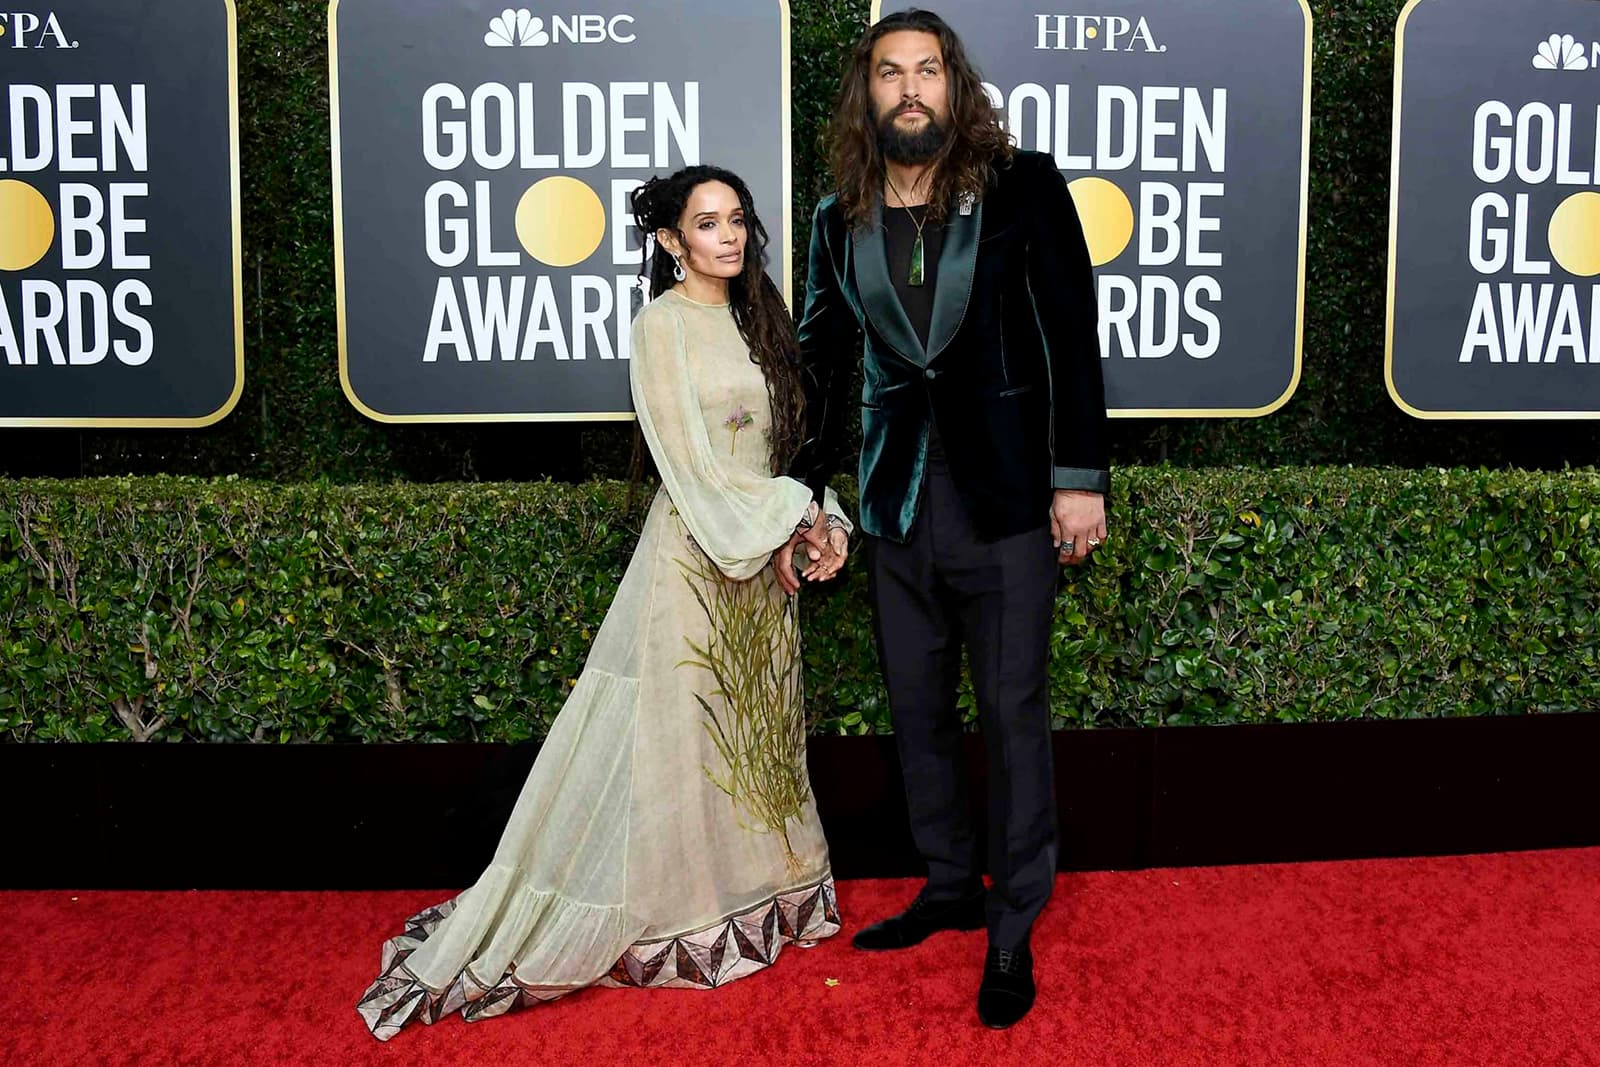 Lisa Bonet wearing Fernando Jorge chalcedony and diamond earrings, and her husband Jason Momoa wearing a Cartier Art Deco style brooch with onyx, emerald and diamonds in white gold, and 46mm Ballon Bleu de Cartier watch in rose gold, as well as his own jade pendant and rings